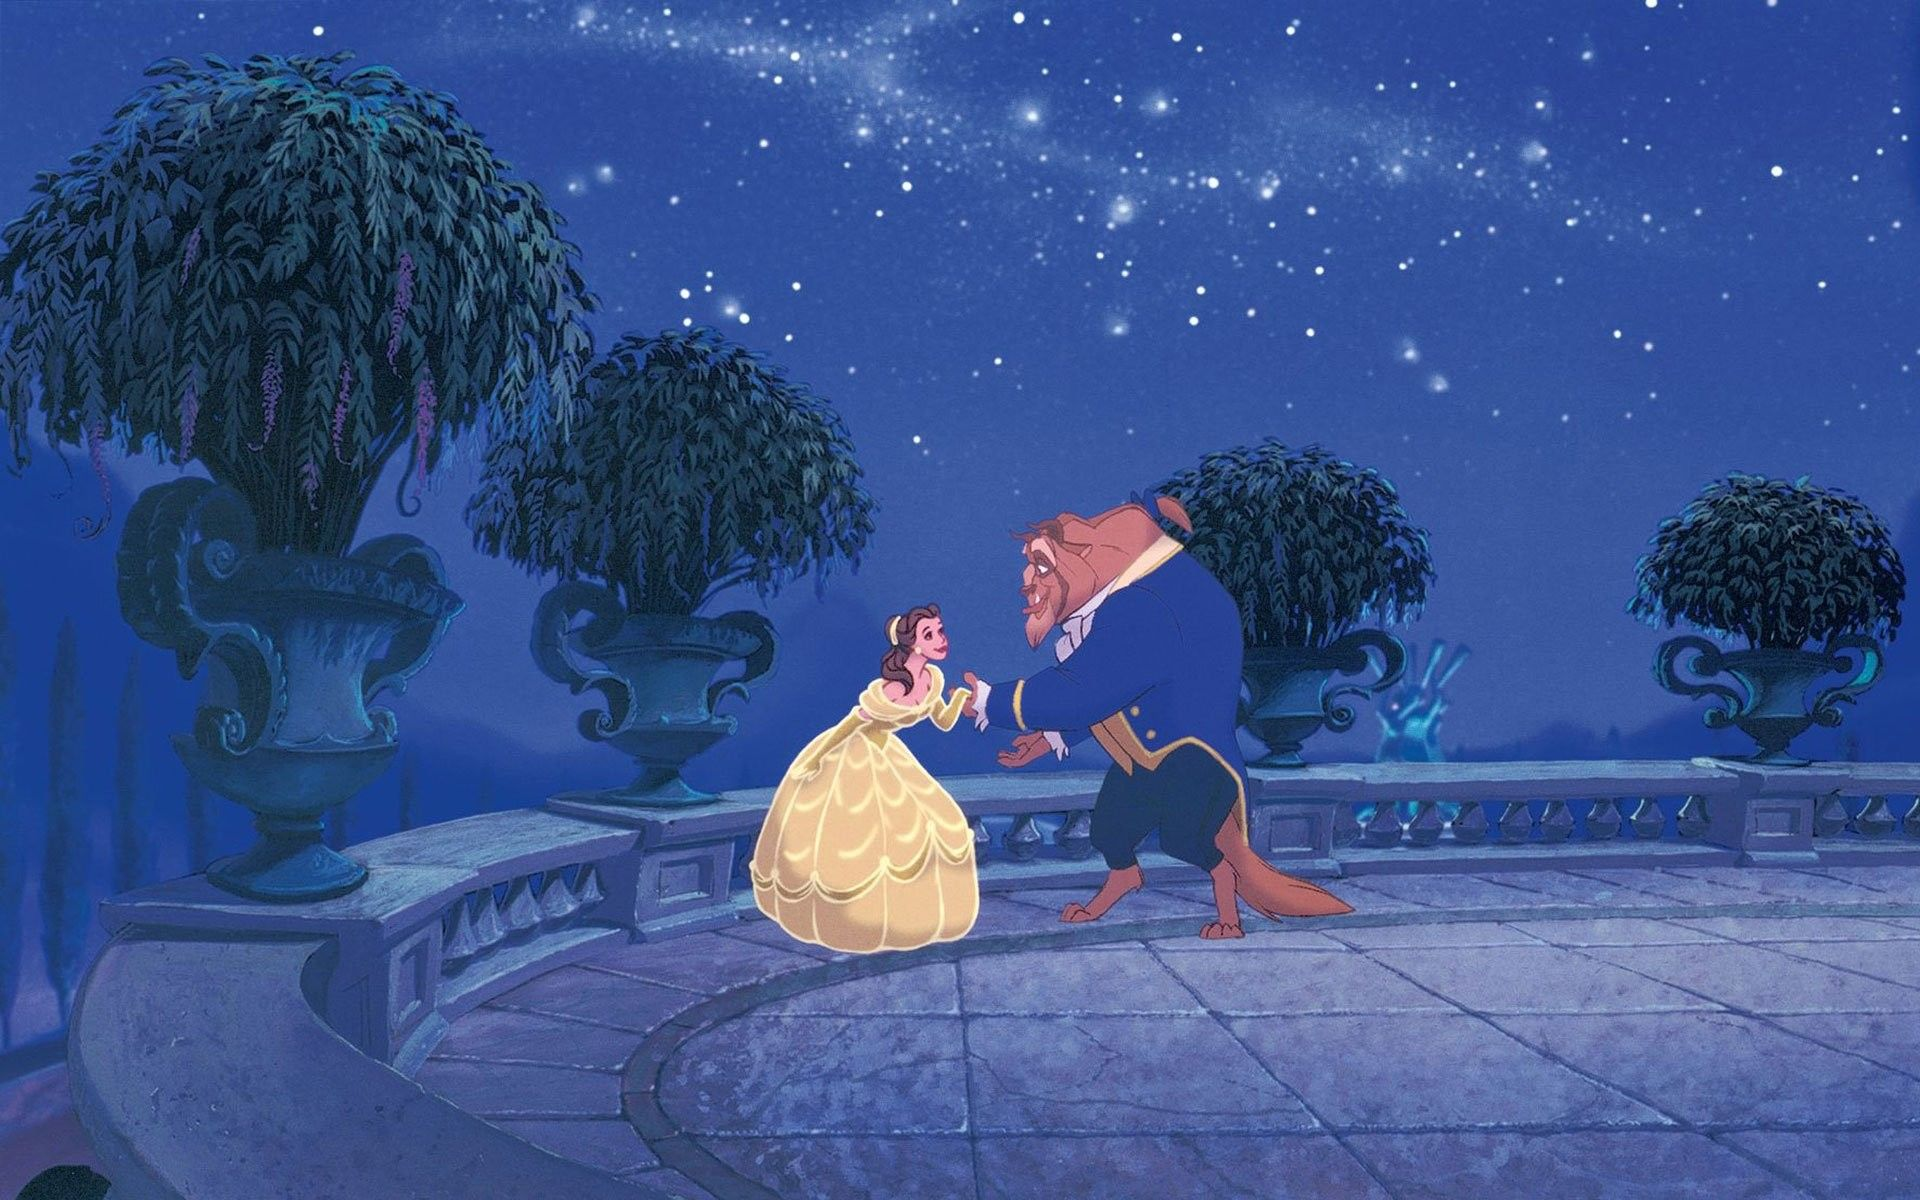 Disney Wallpaper Hd 70 Images Beast Wallpaper Beauty And The Beast Wallpaper Disney Desktop Wallpaper